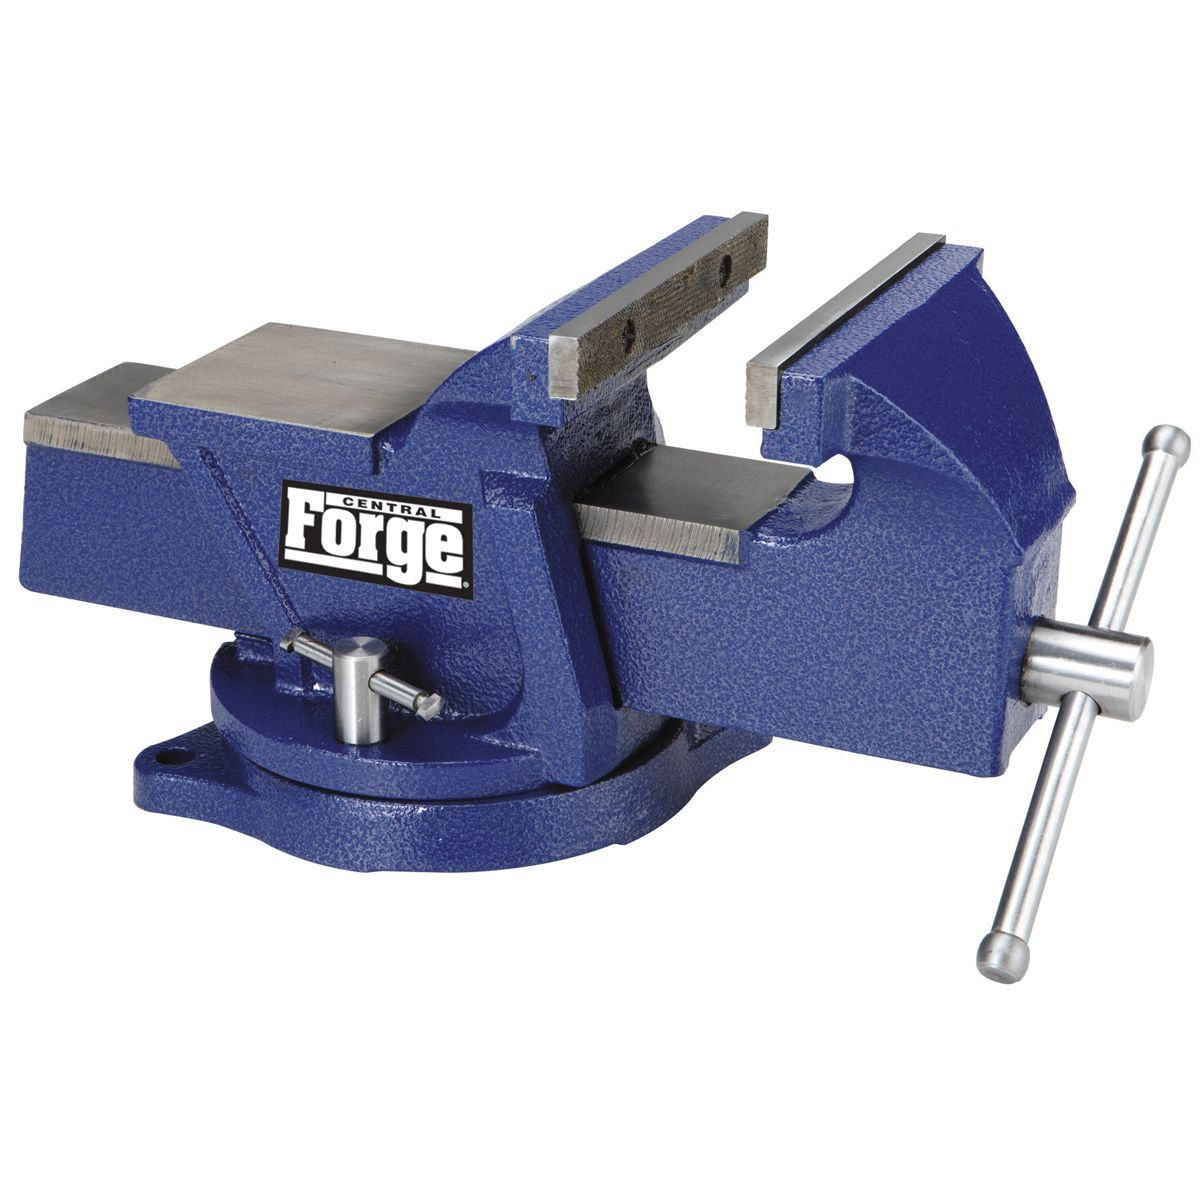 6 In Swivel Vise With Anvil Woodworking Bench Vise Woodworking Bench Used Woodworking Machinery